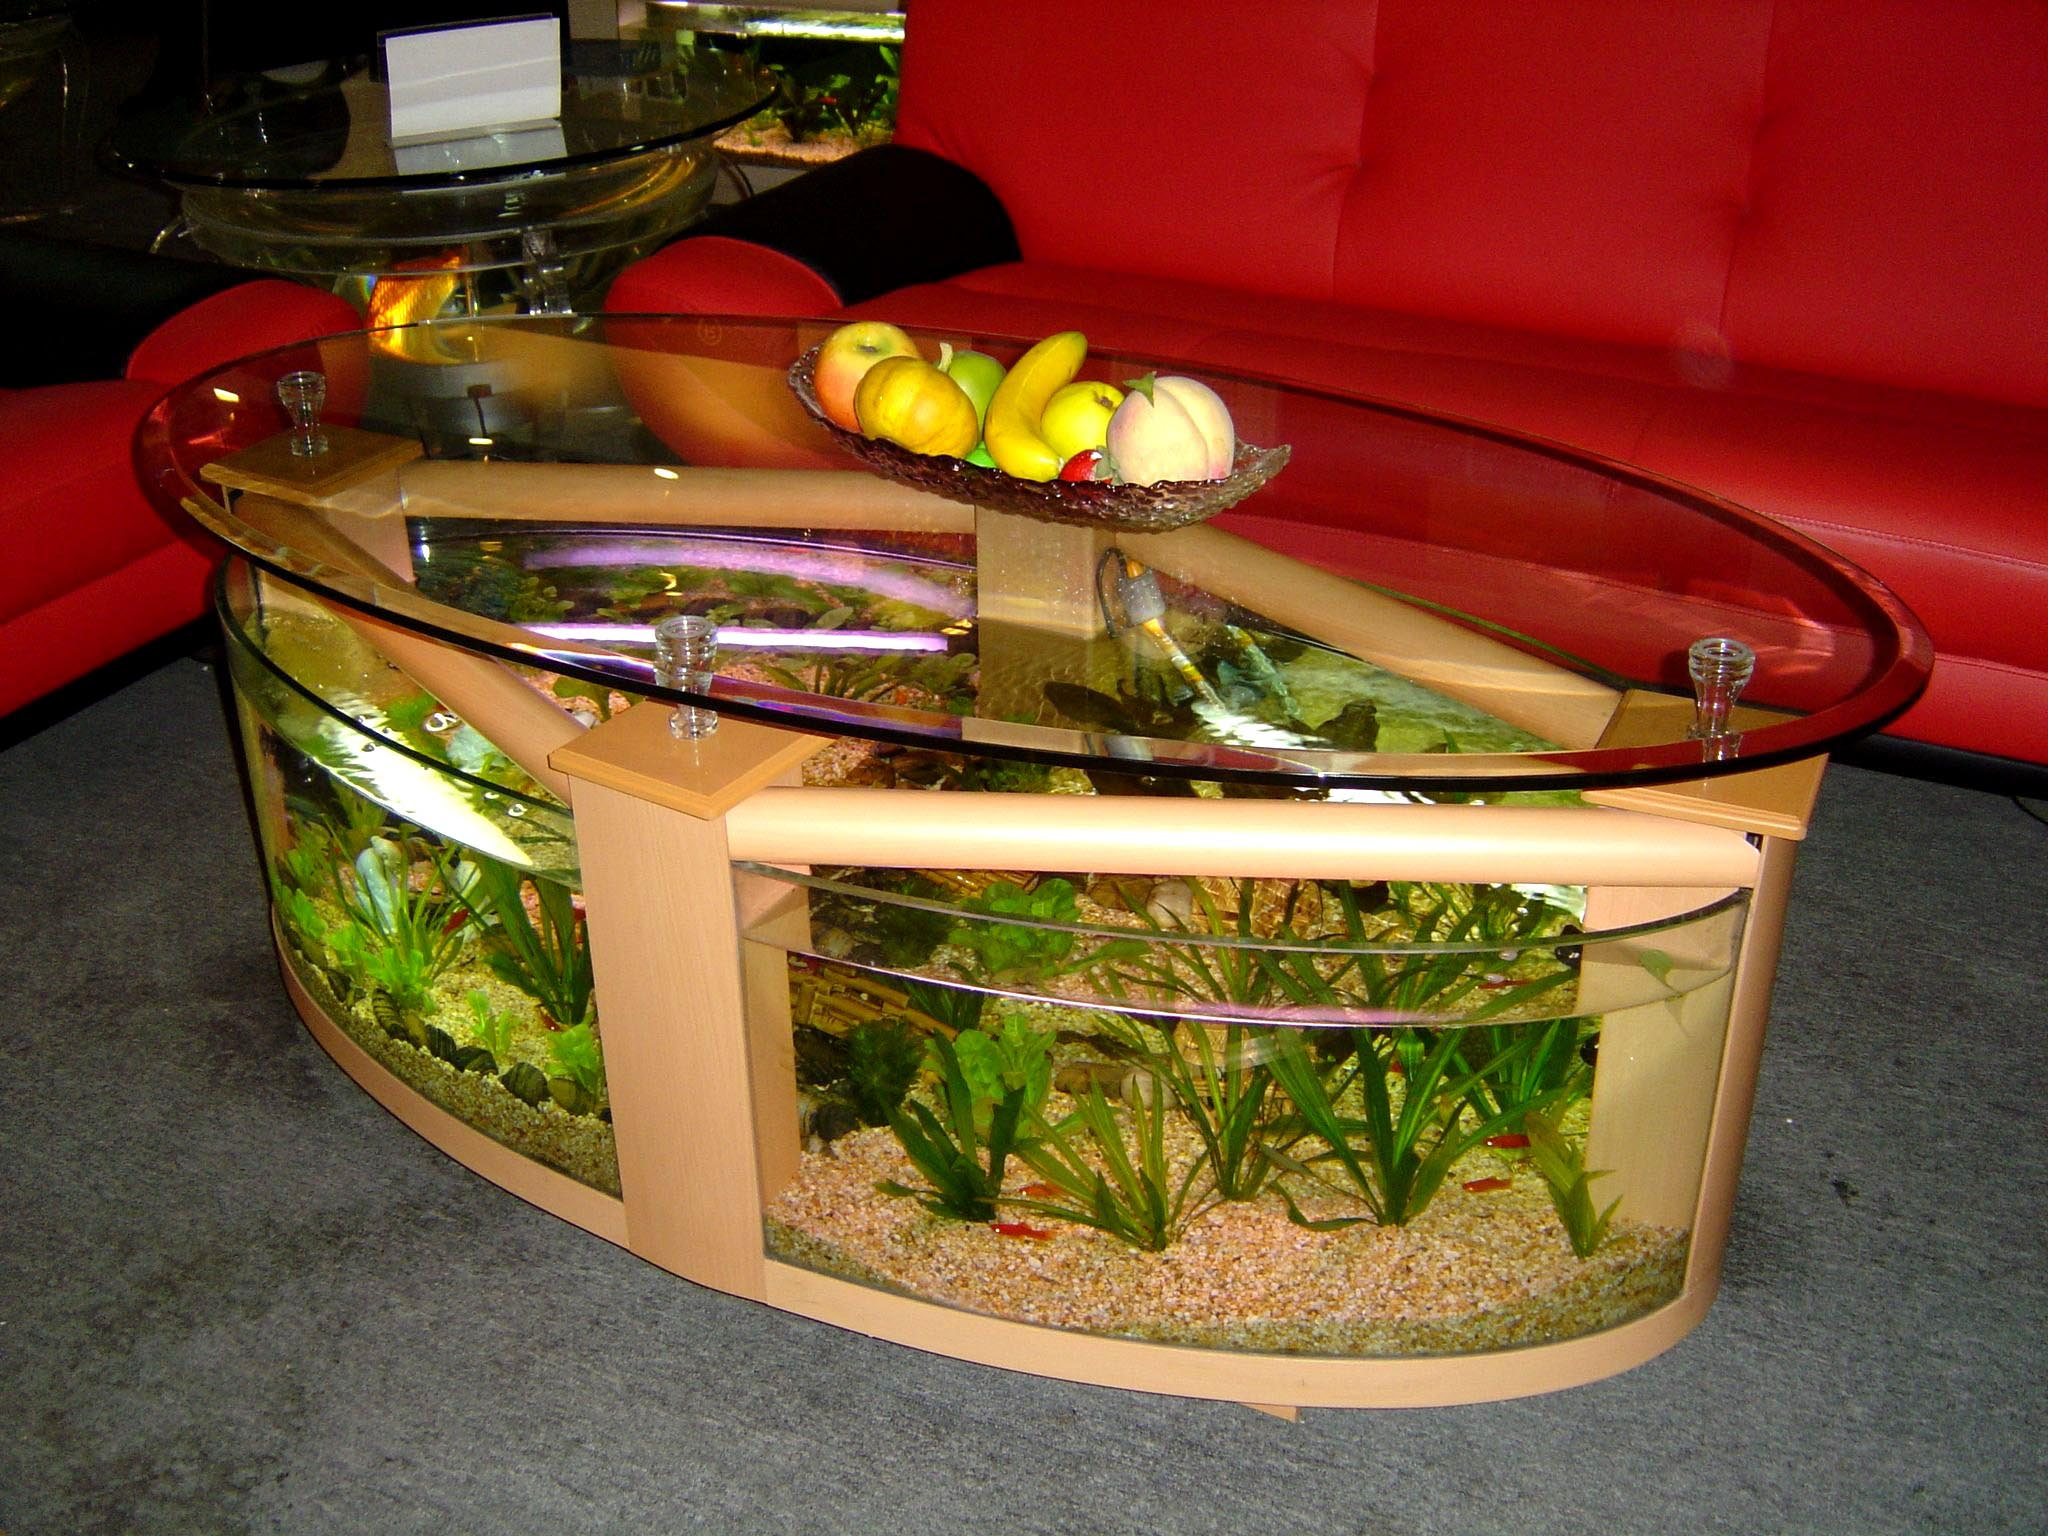 Aquarium Coffee Table Source How To Make An Aquarium Coffee Table